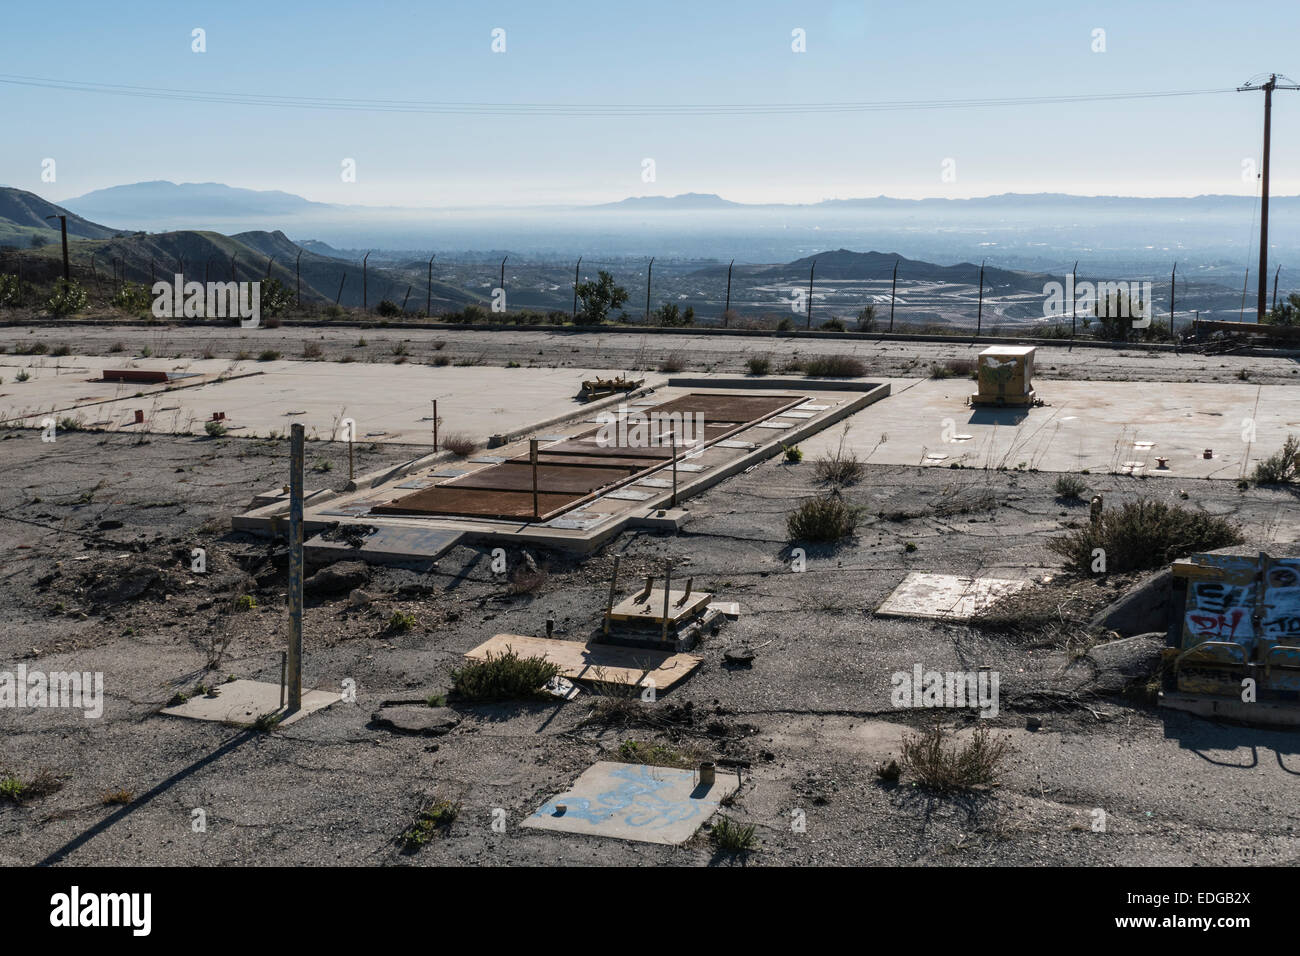 Los Angeles, California, USA - January 2, 2014:  Abandoned Nike missile silo above the San Fernando Valley area - Stock Image